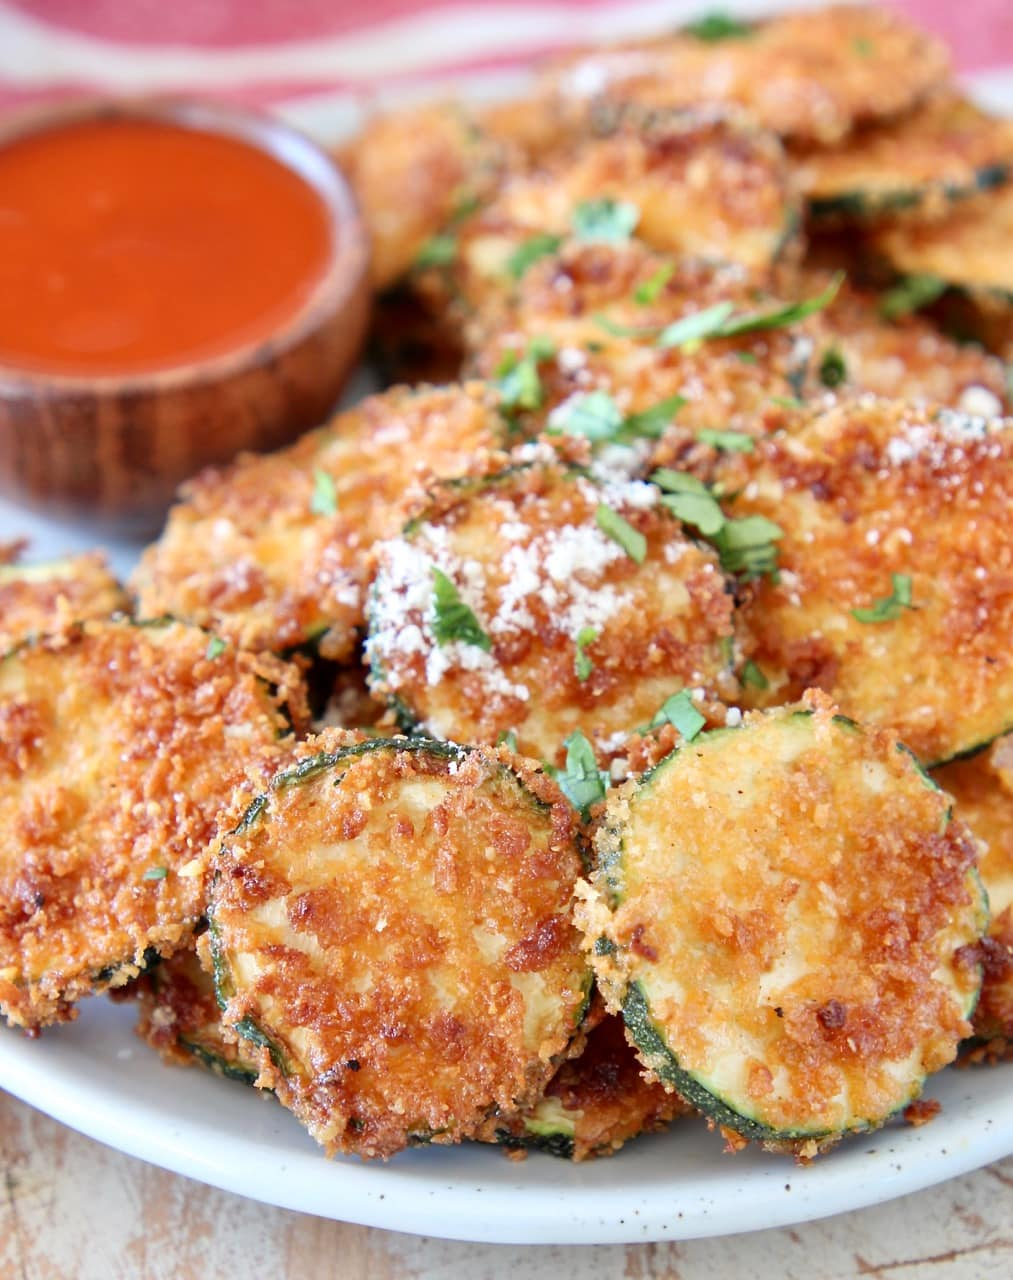 Crispy zucchini chips with parmesan cheese on plate with small bowl of buffalo sauce